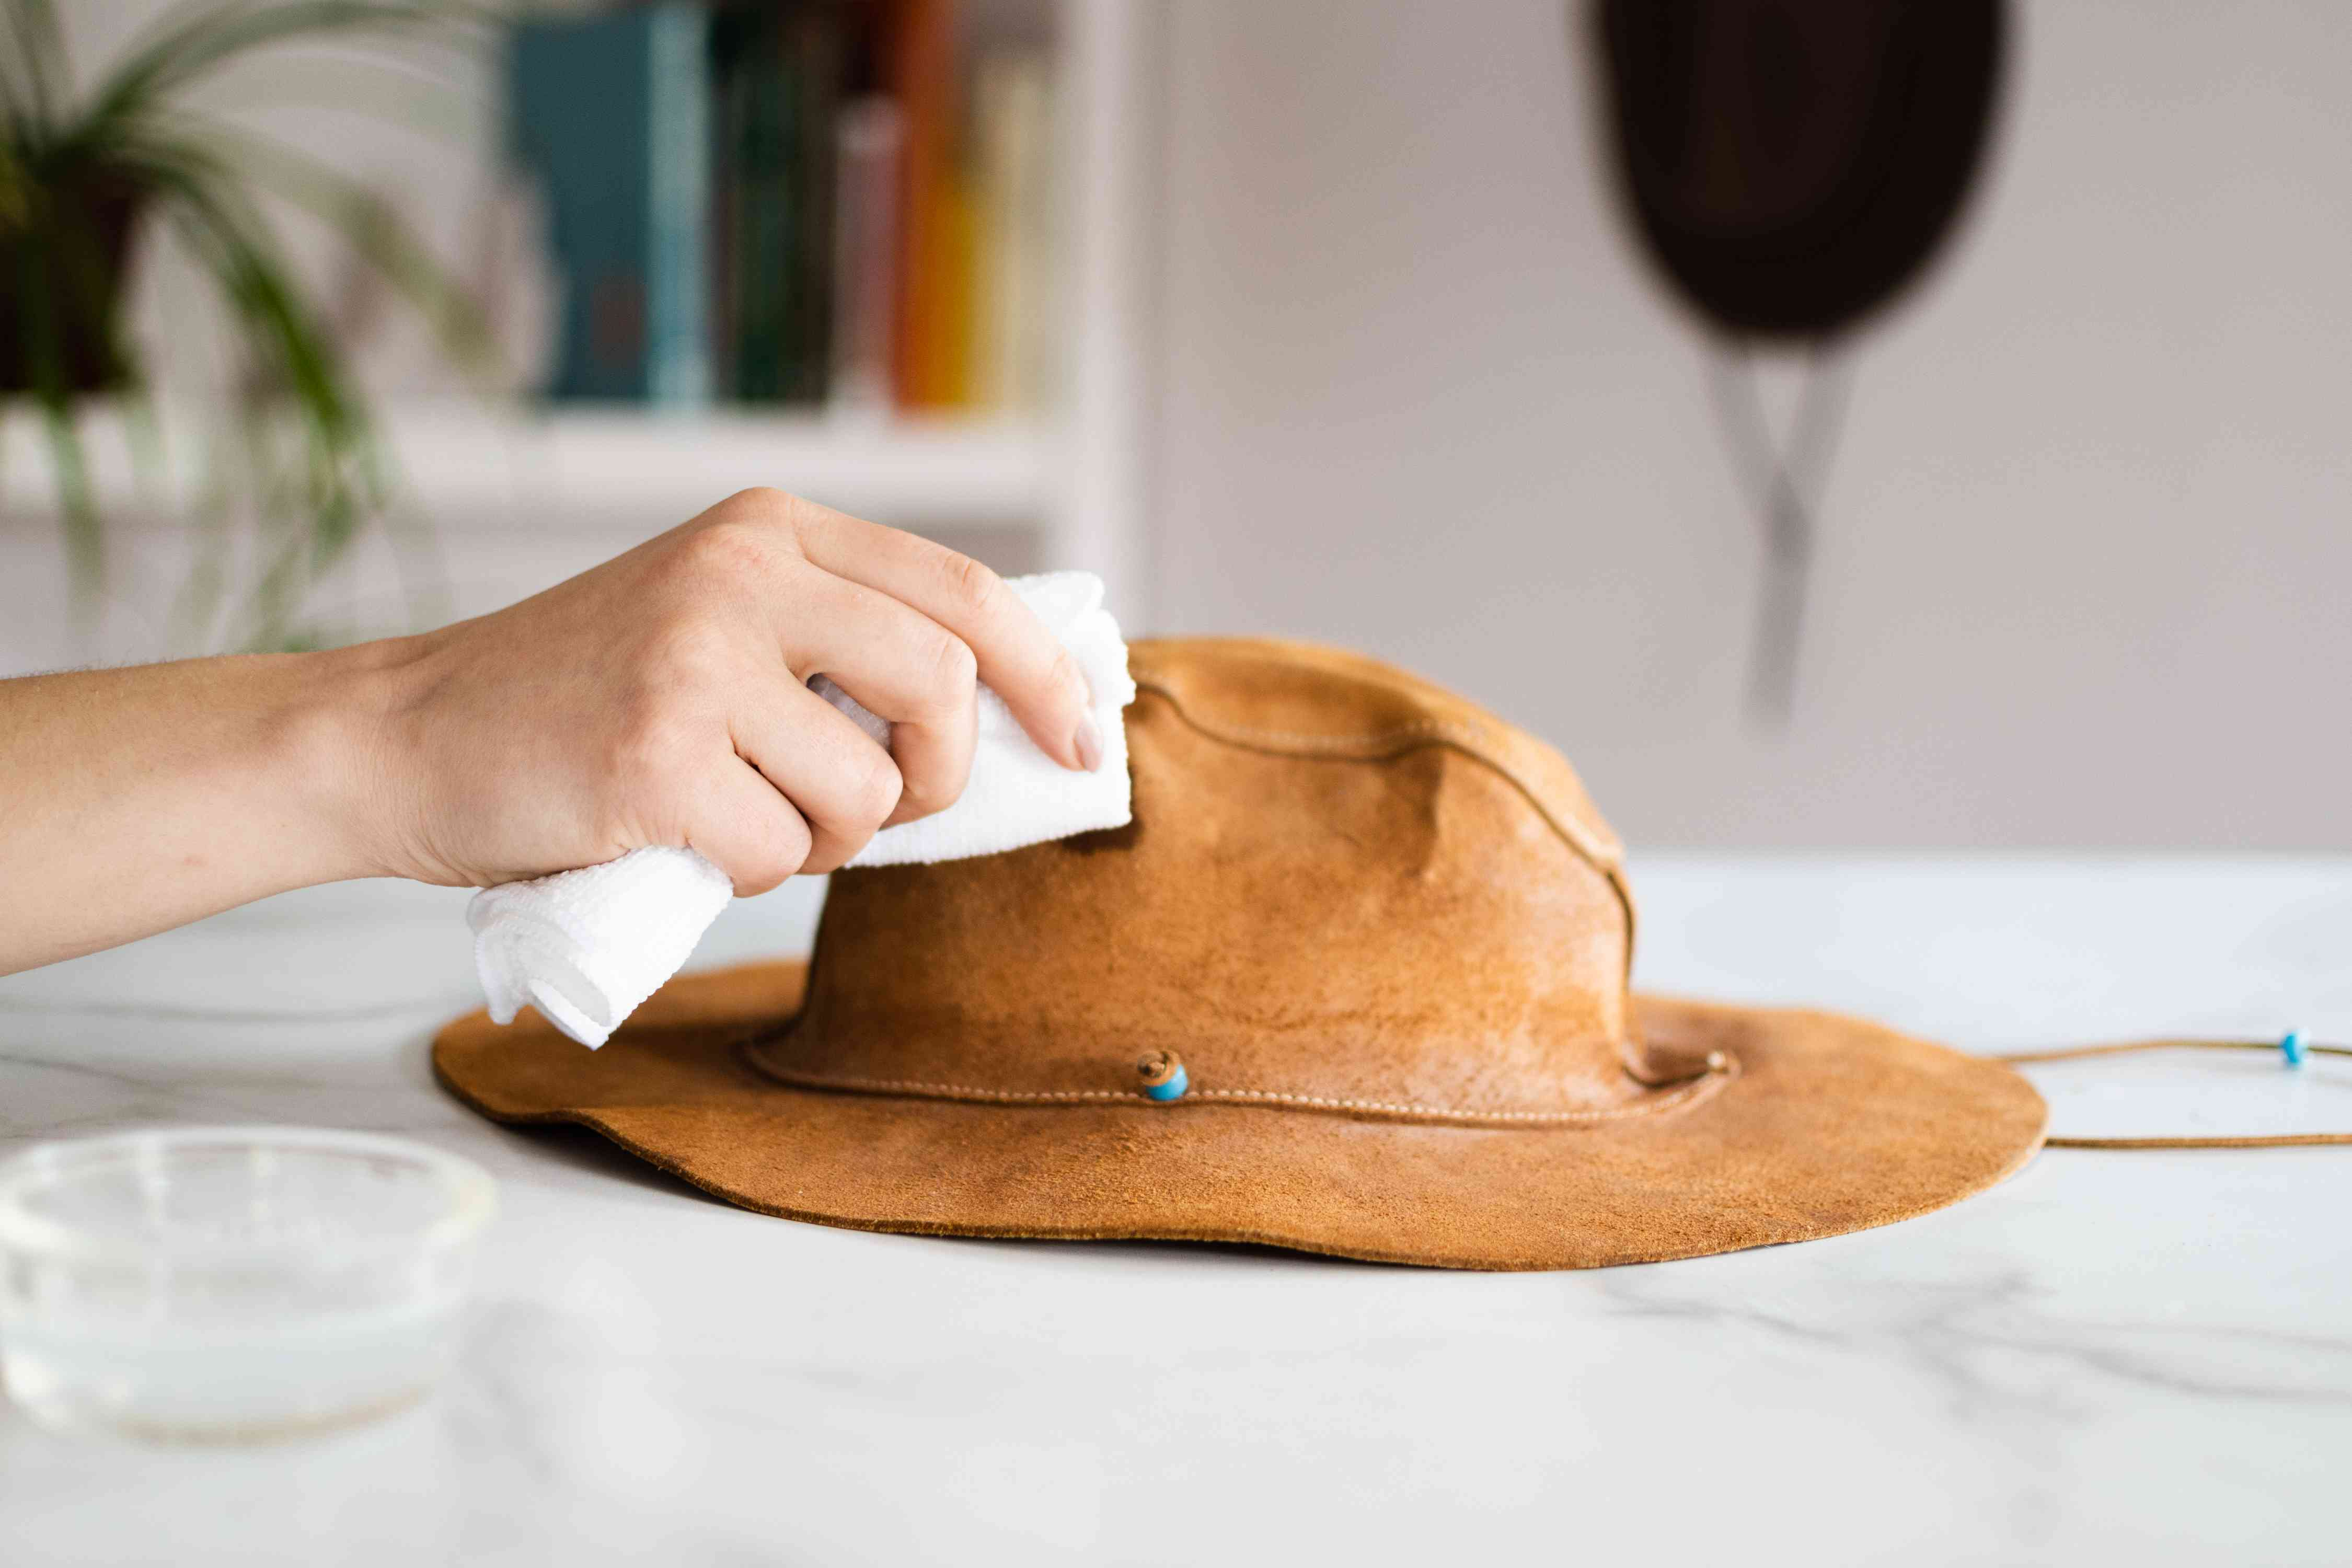 White cloth with mild detergent wiping stain on light brown suede leather hat